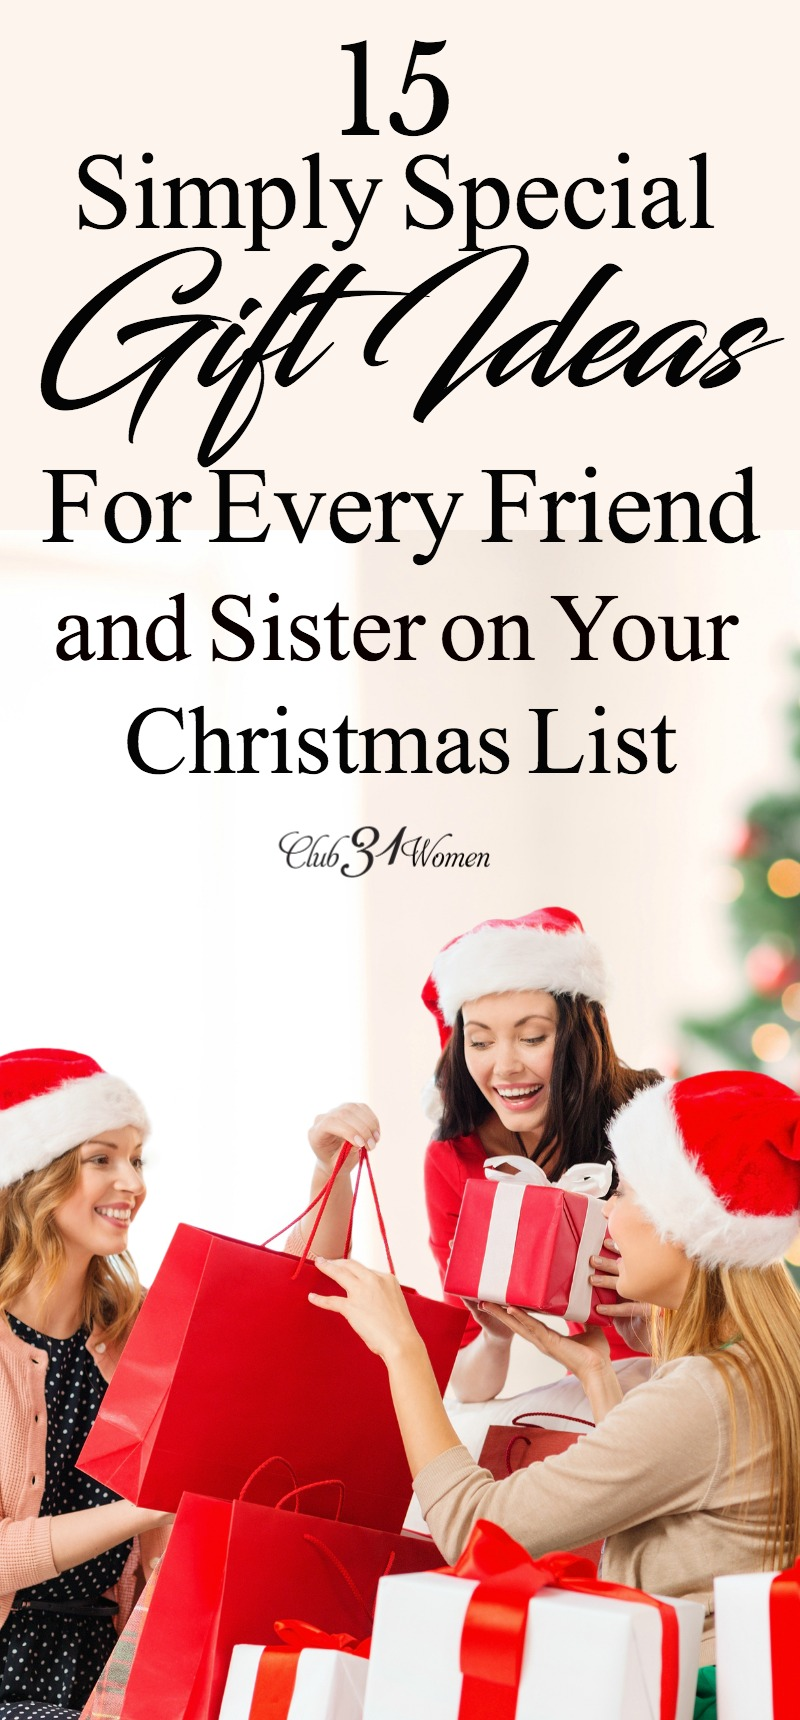 If you're looking for that perfect gift for your sister or friend, here is a lovely list of beautiful ideas to choose a gift she is sure to treasure! via @Club31Women